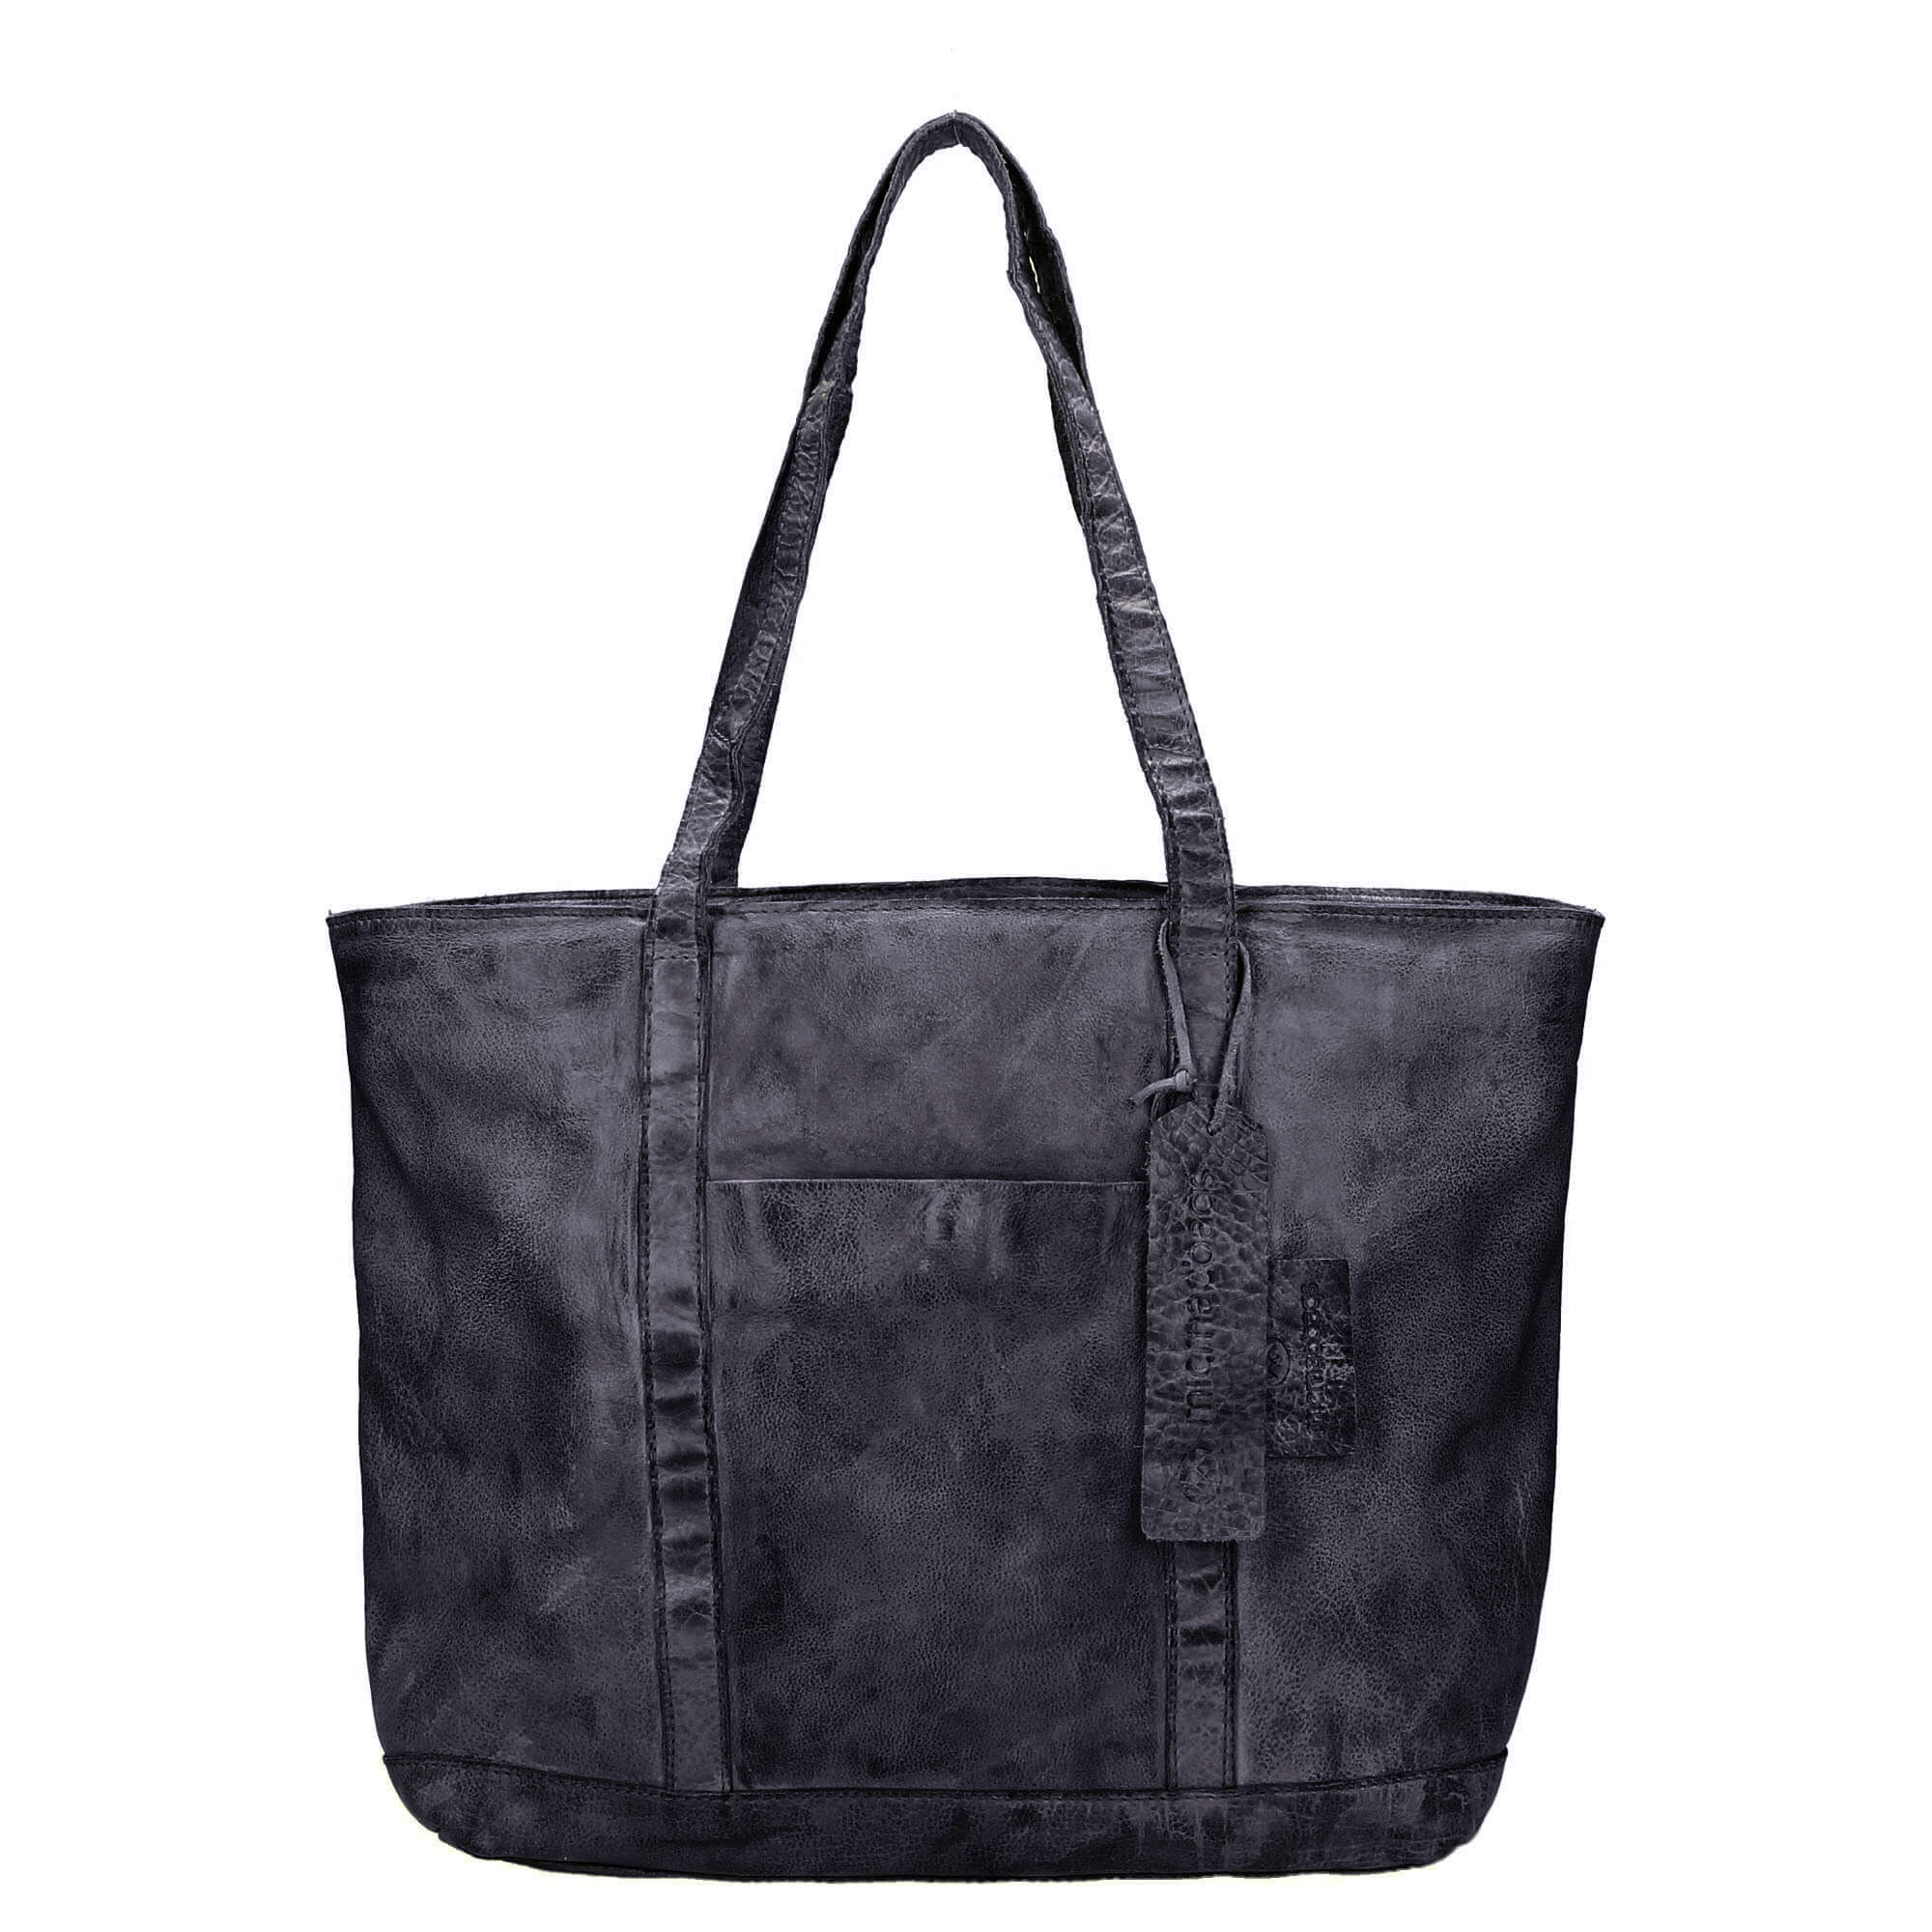 Micmacbags, Shopper, 16556, Dark Taupe